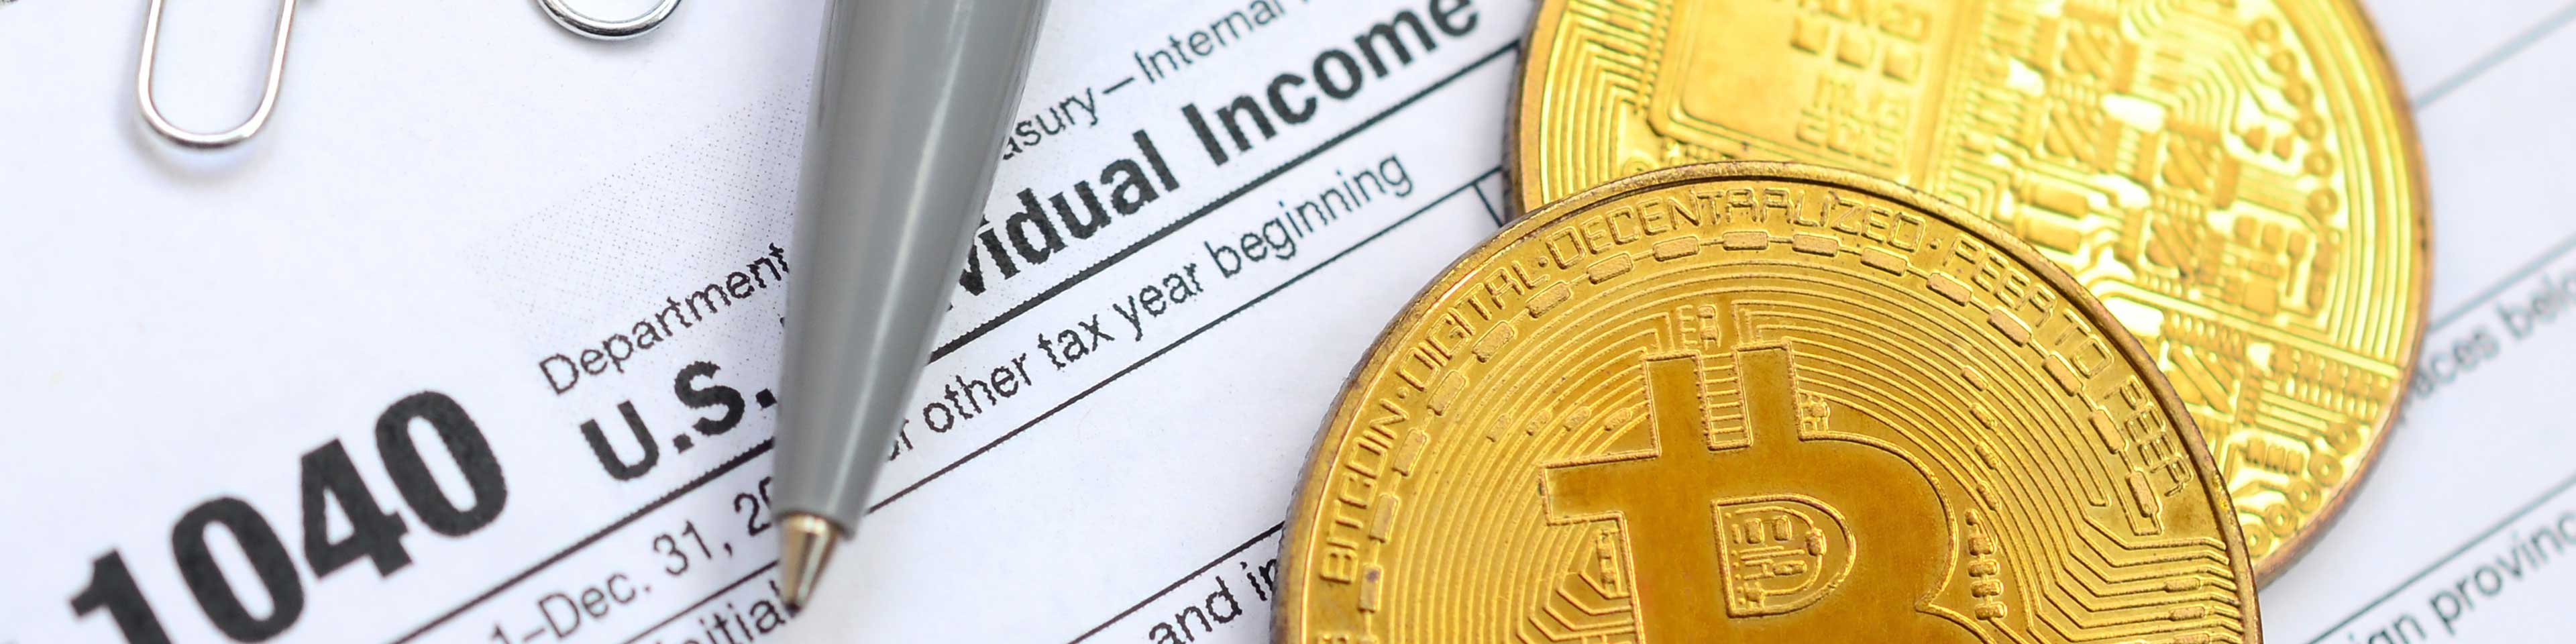 2021 Accounting Firm and Tax Practice Cryptocurrency Tax Guide